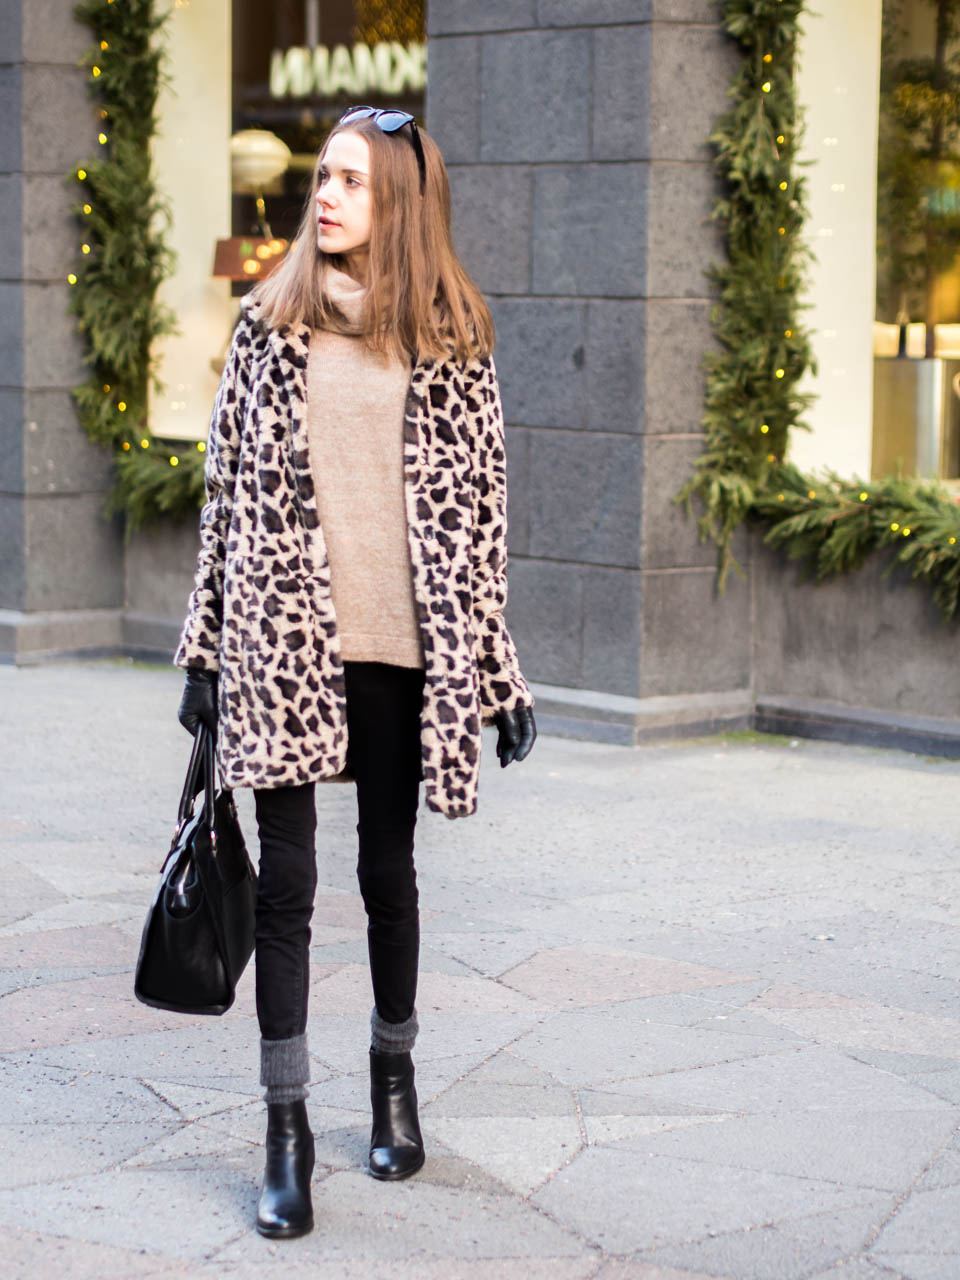 fashion-blogger-outfit-inspiration-leopard-faux-fur-coat